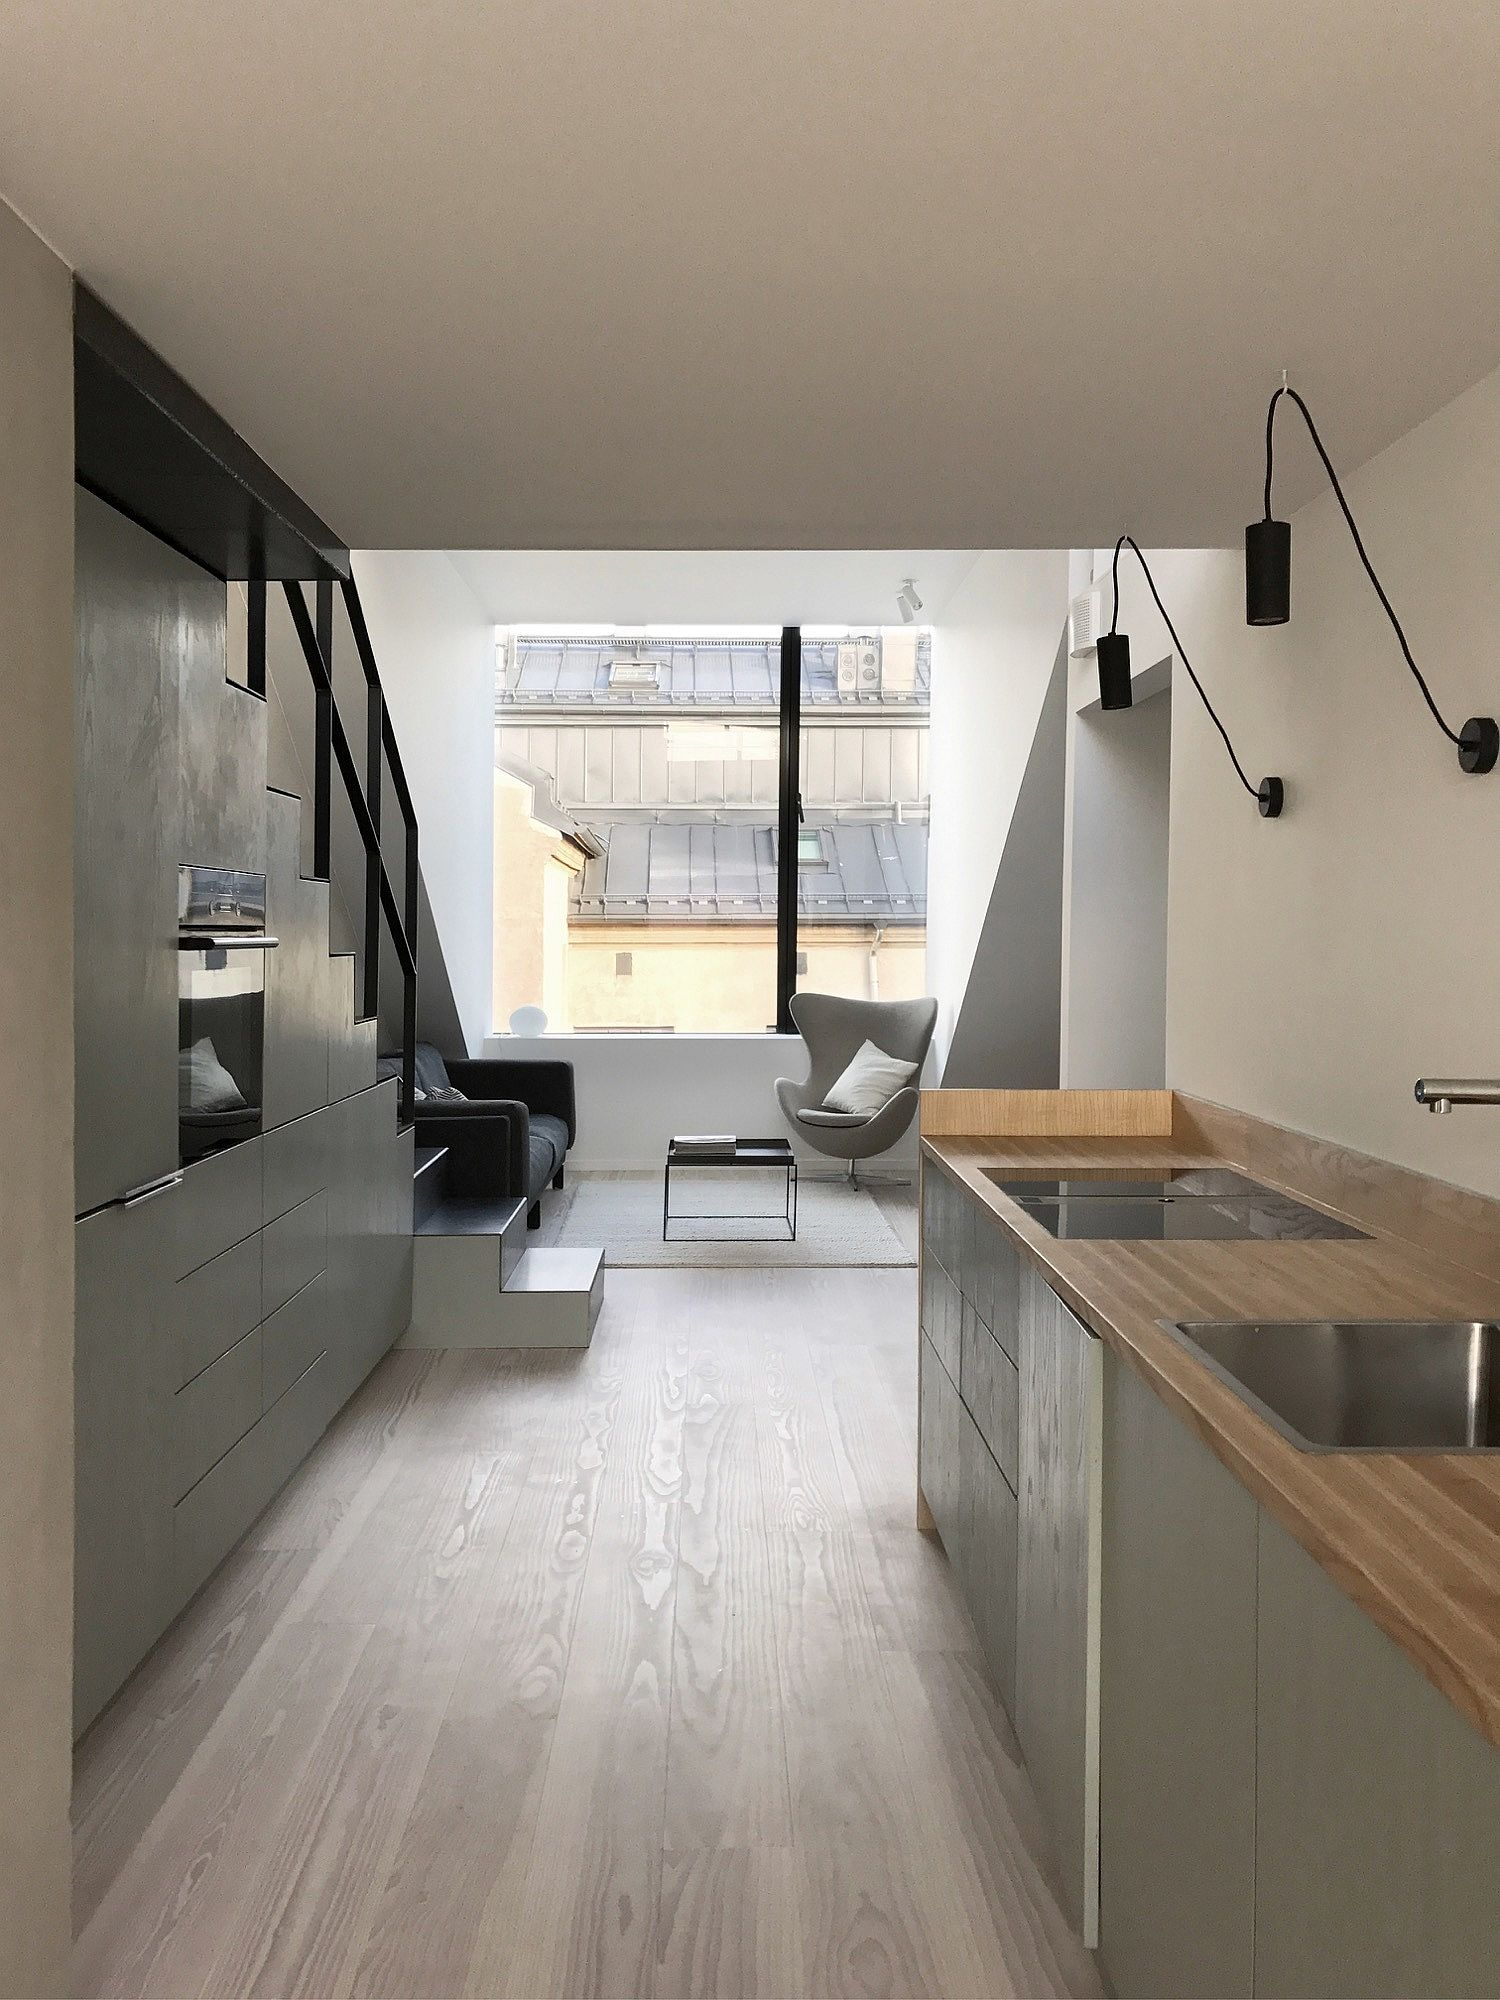 Smart kitchen and dining area maximize space inside the Oslo apartments